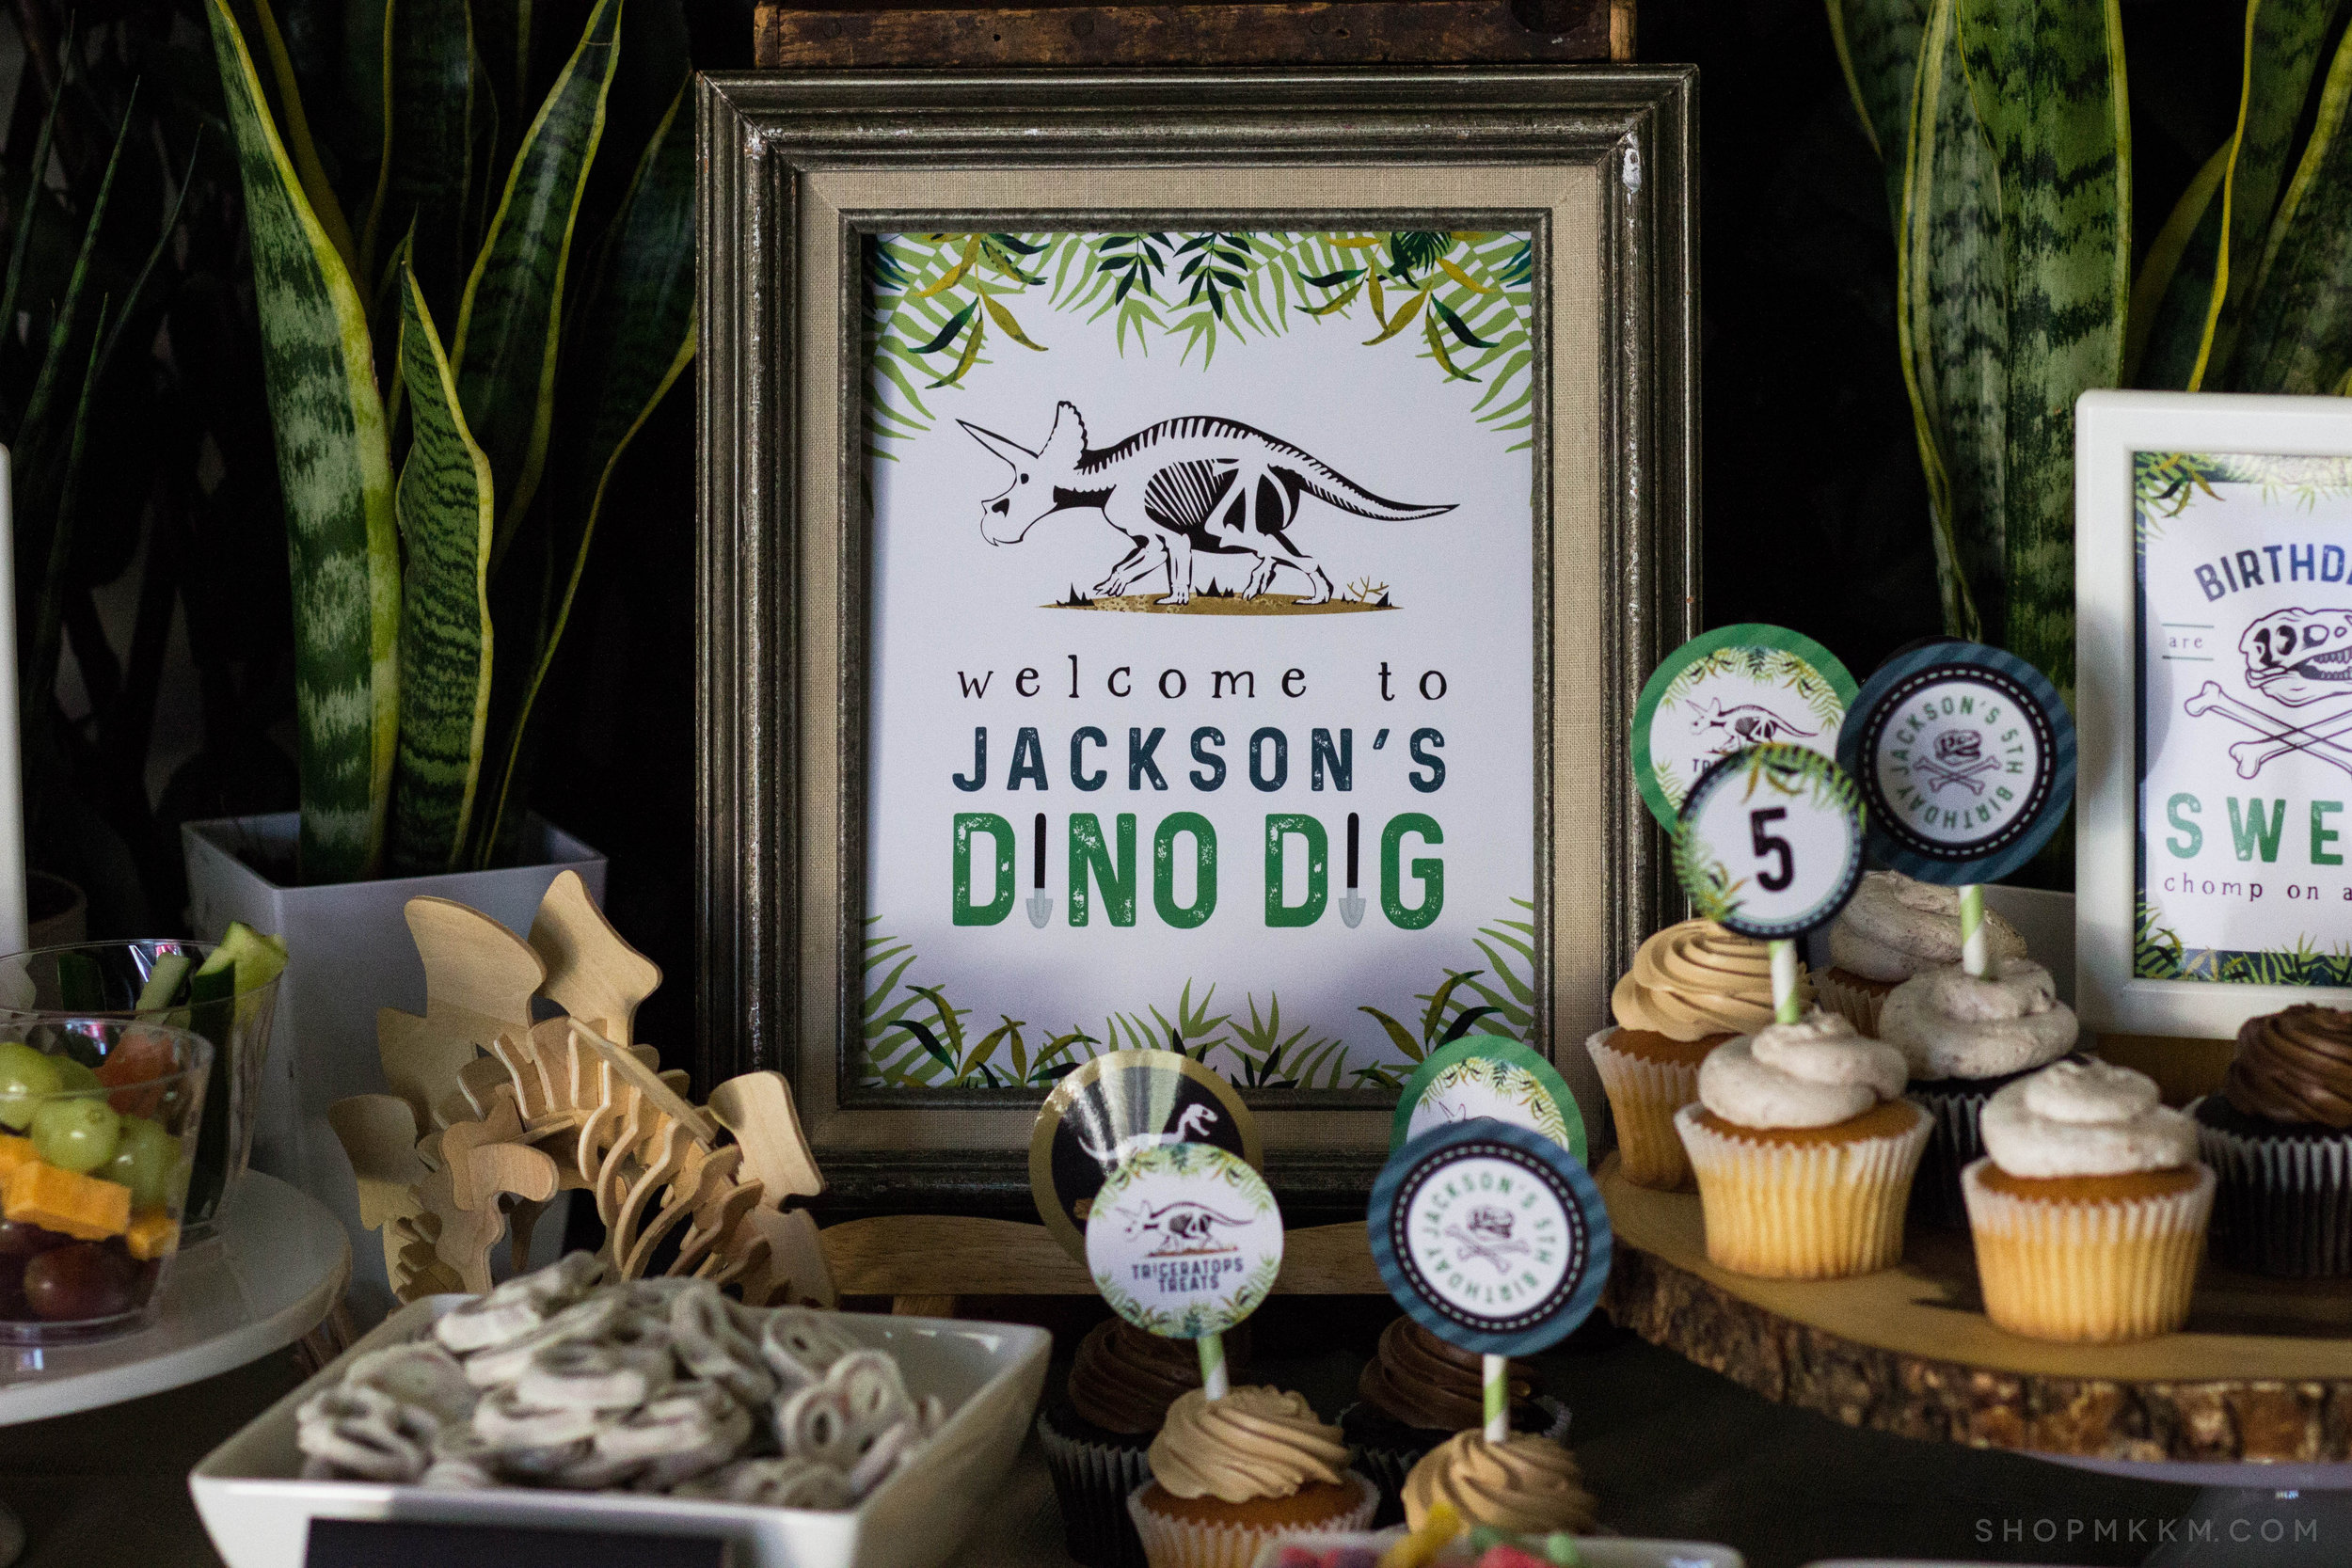 Dinosaur Dig Party Sign from shopmkkm.com